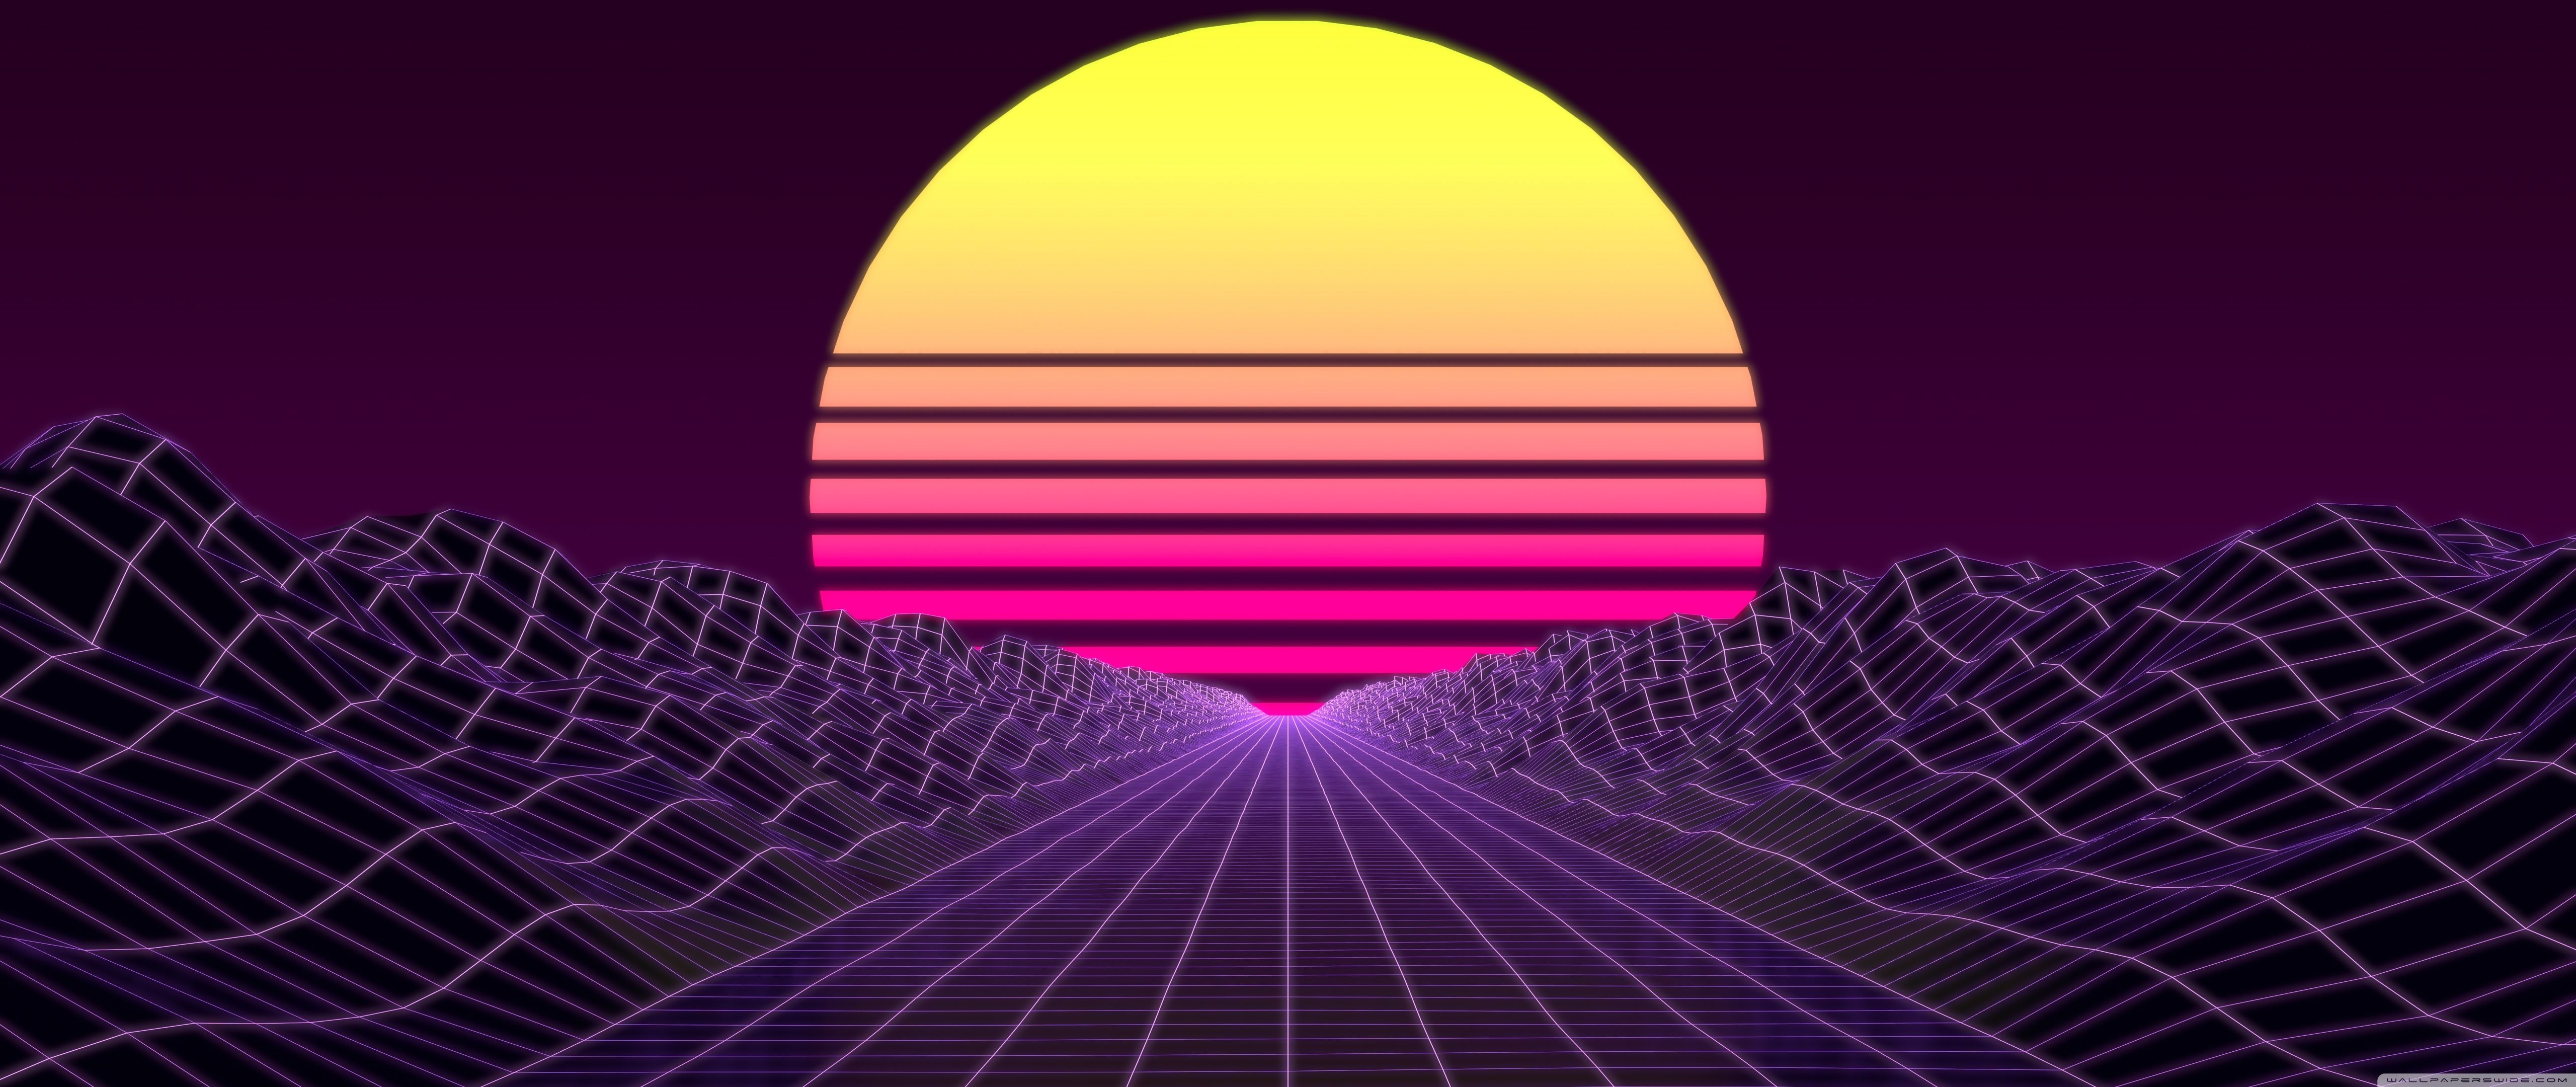 Synthwave Wallpapers   Top Synthwave Backgrounds 5120x2160